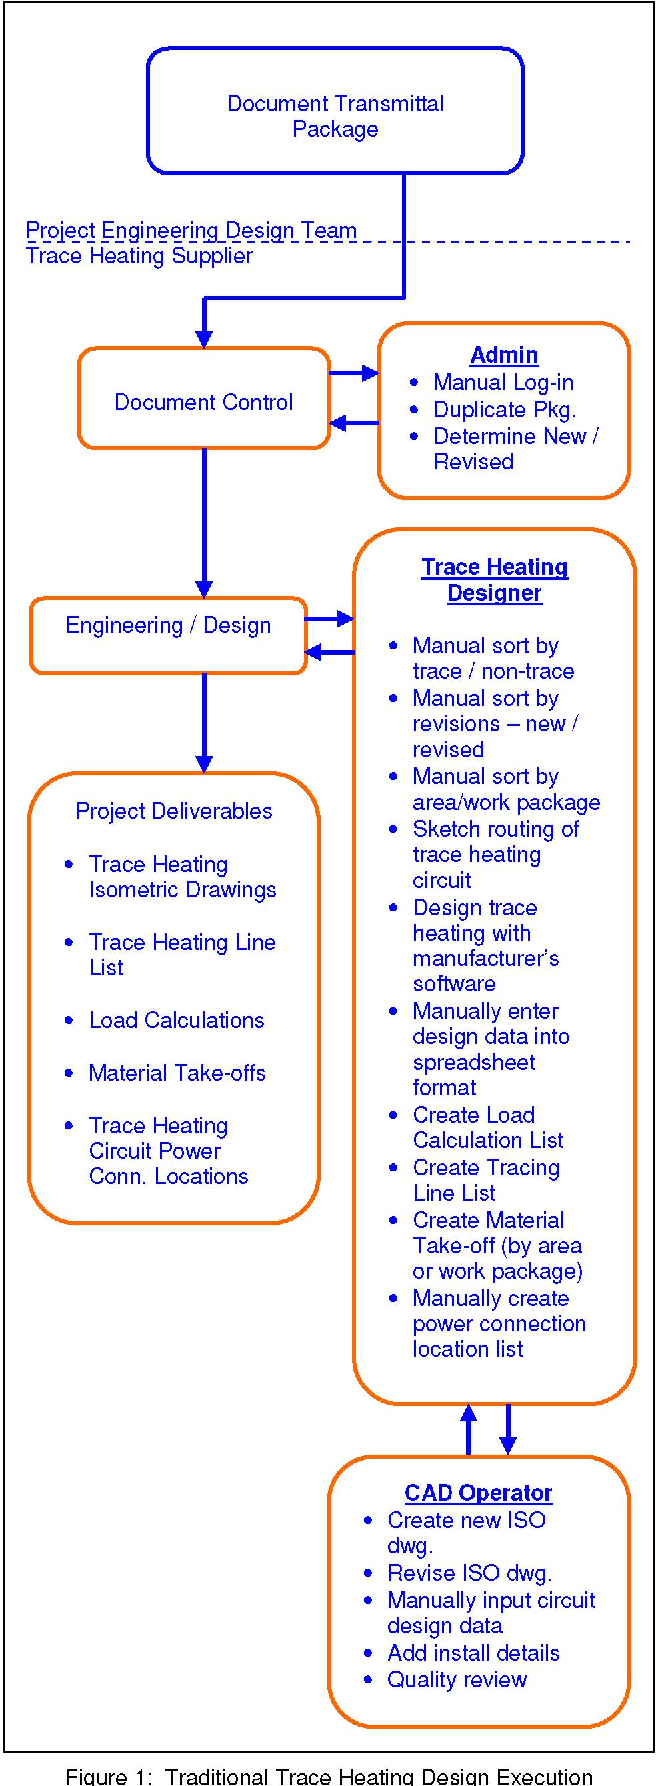 Automating Trace Heating Designs from Plant 3-D Models - Semantic